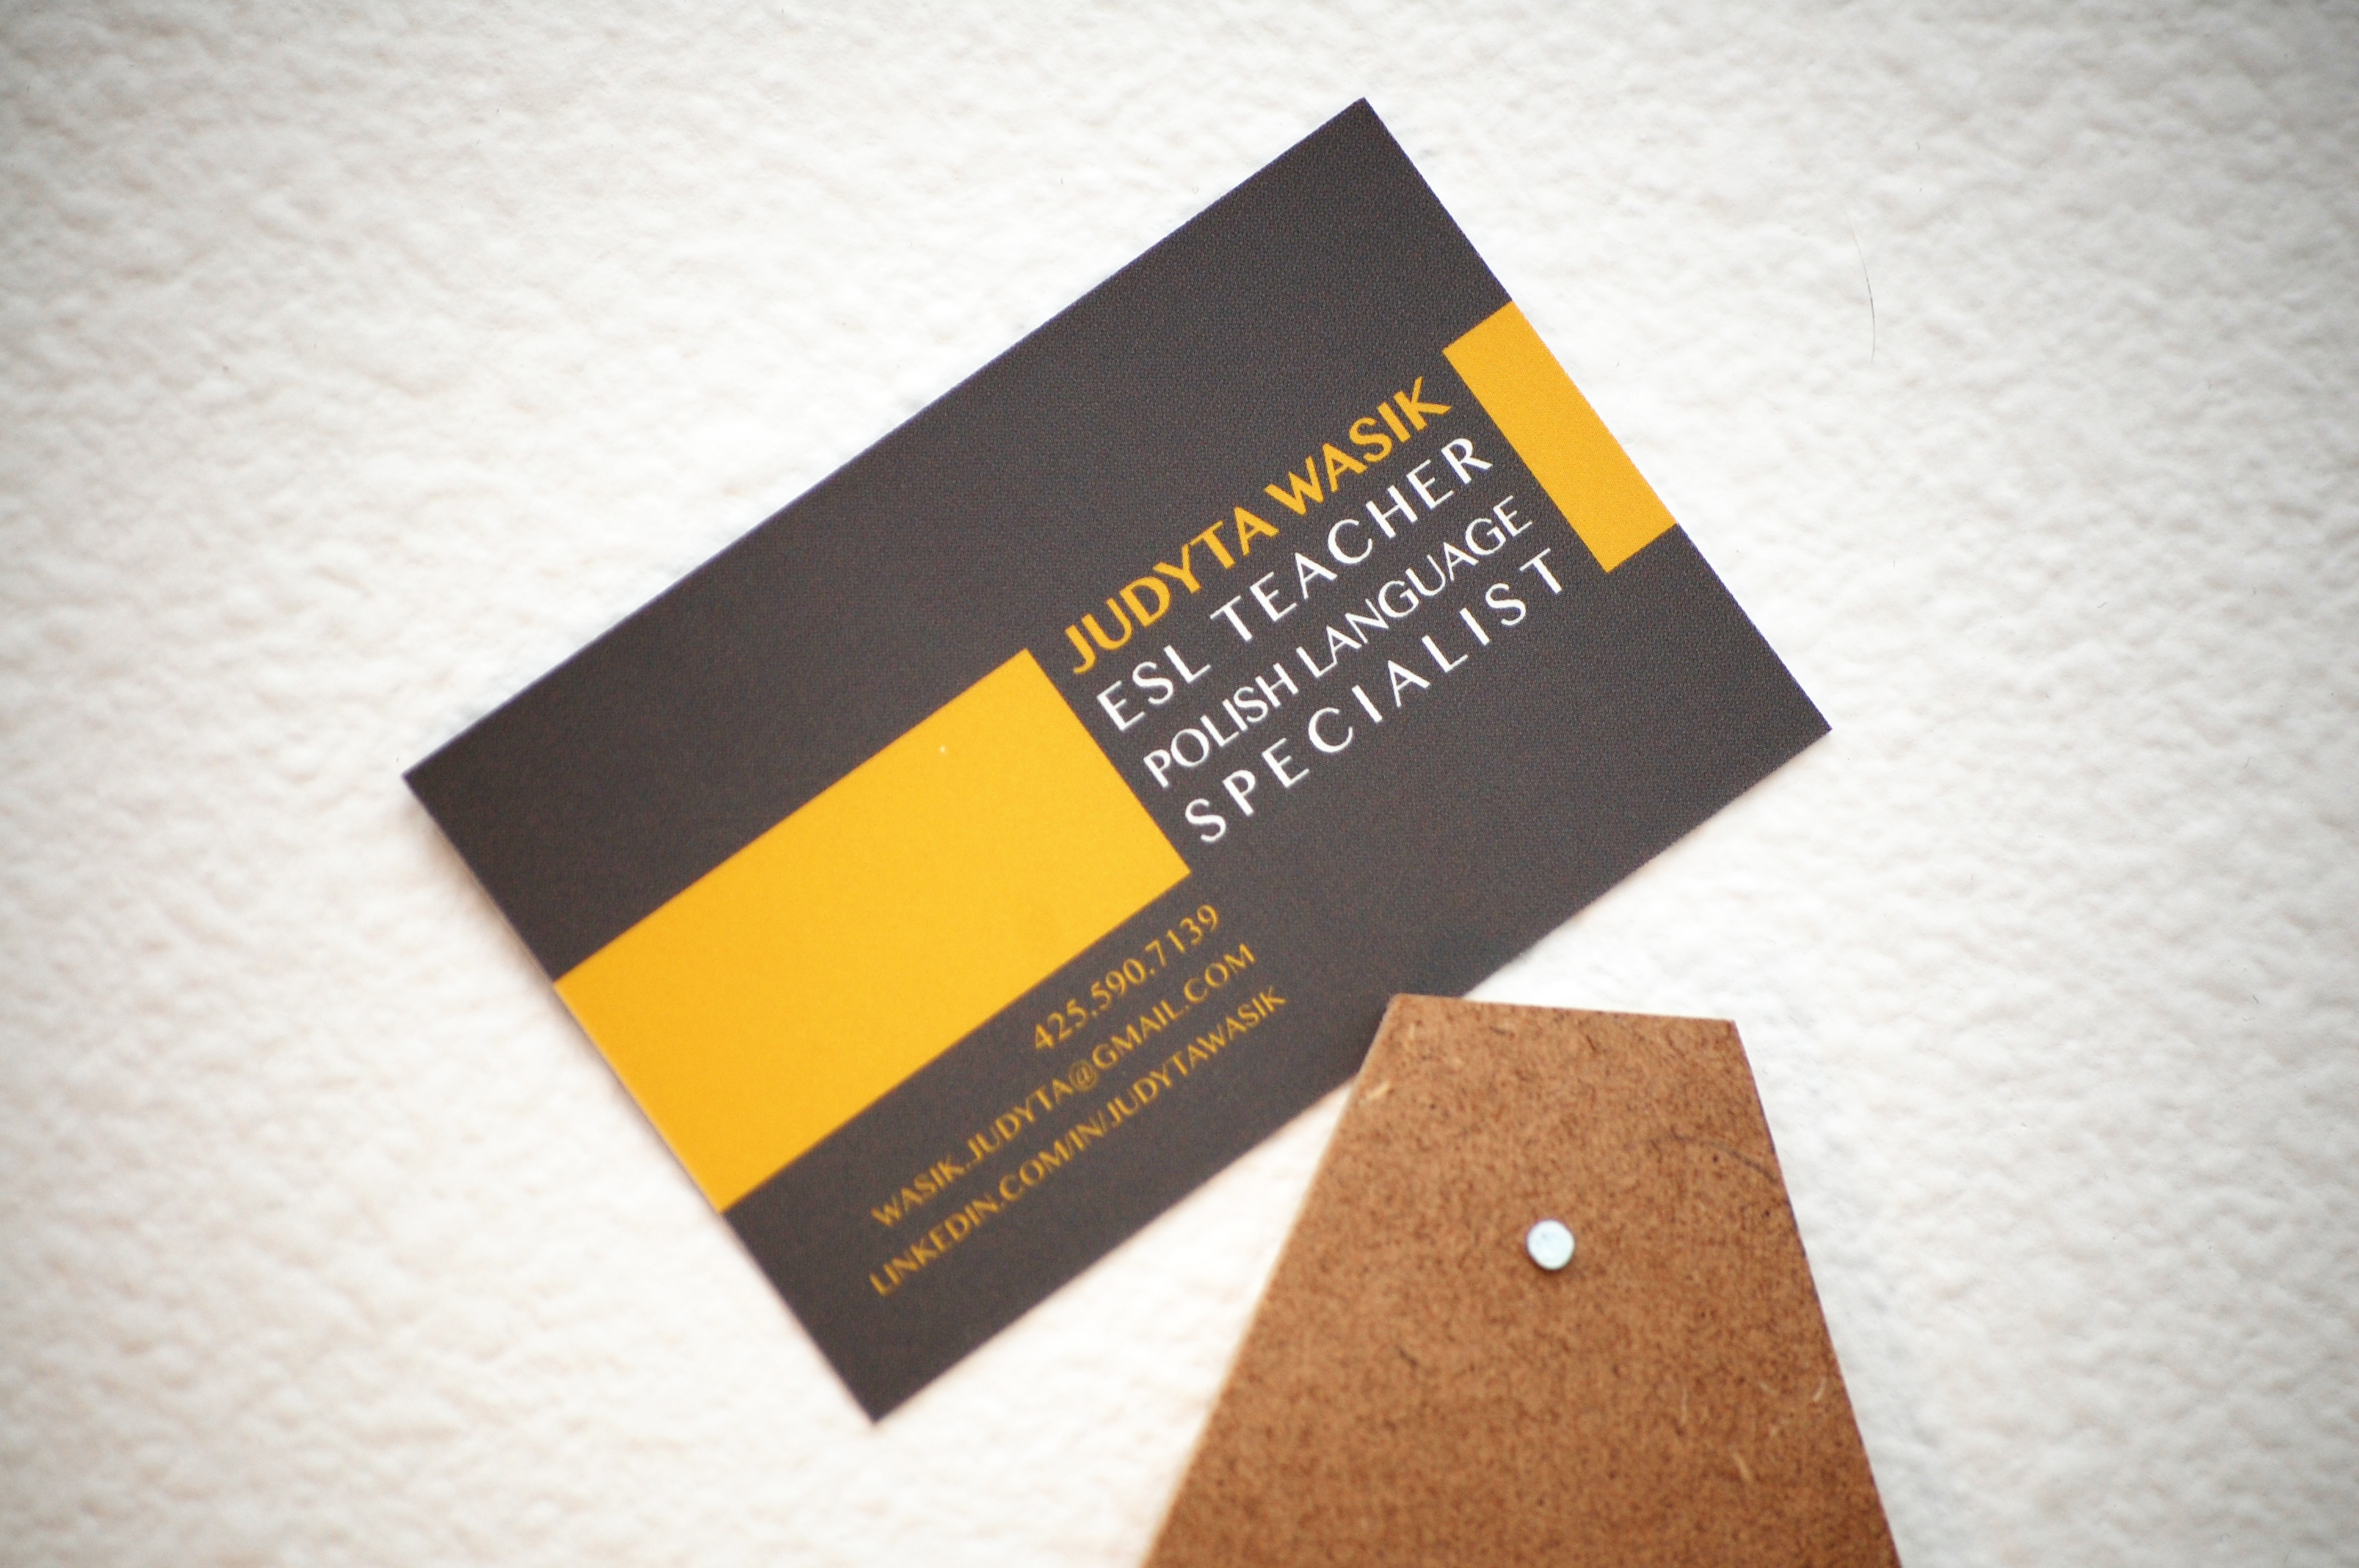 Joanna wybranska business card designed business card for a polish english teacher using her favorite quotes definitions and color palette printed at moo client project colourmoves Choice Image